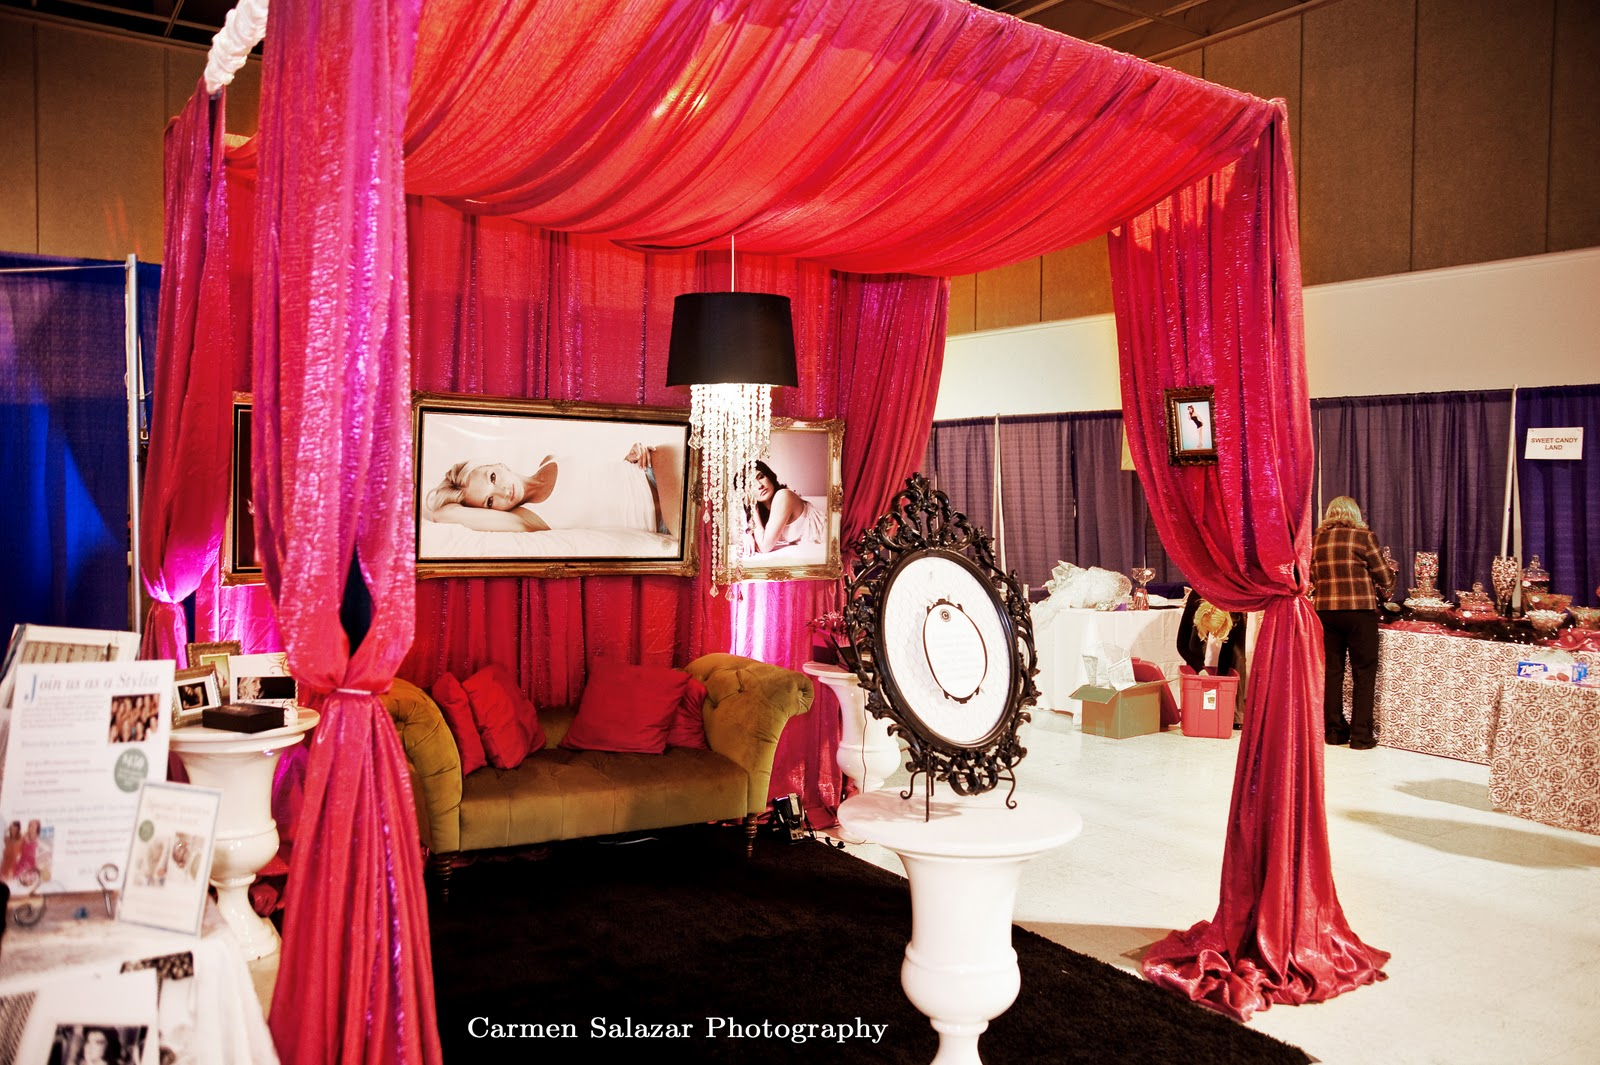 bridal booth booths event display shows fair designs decor studio expo vendor displays trade events pricing upcoming availability call today